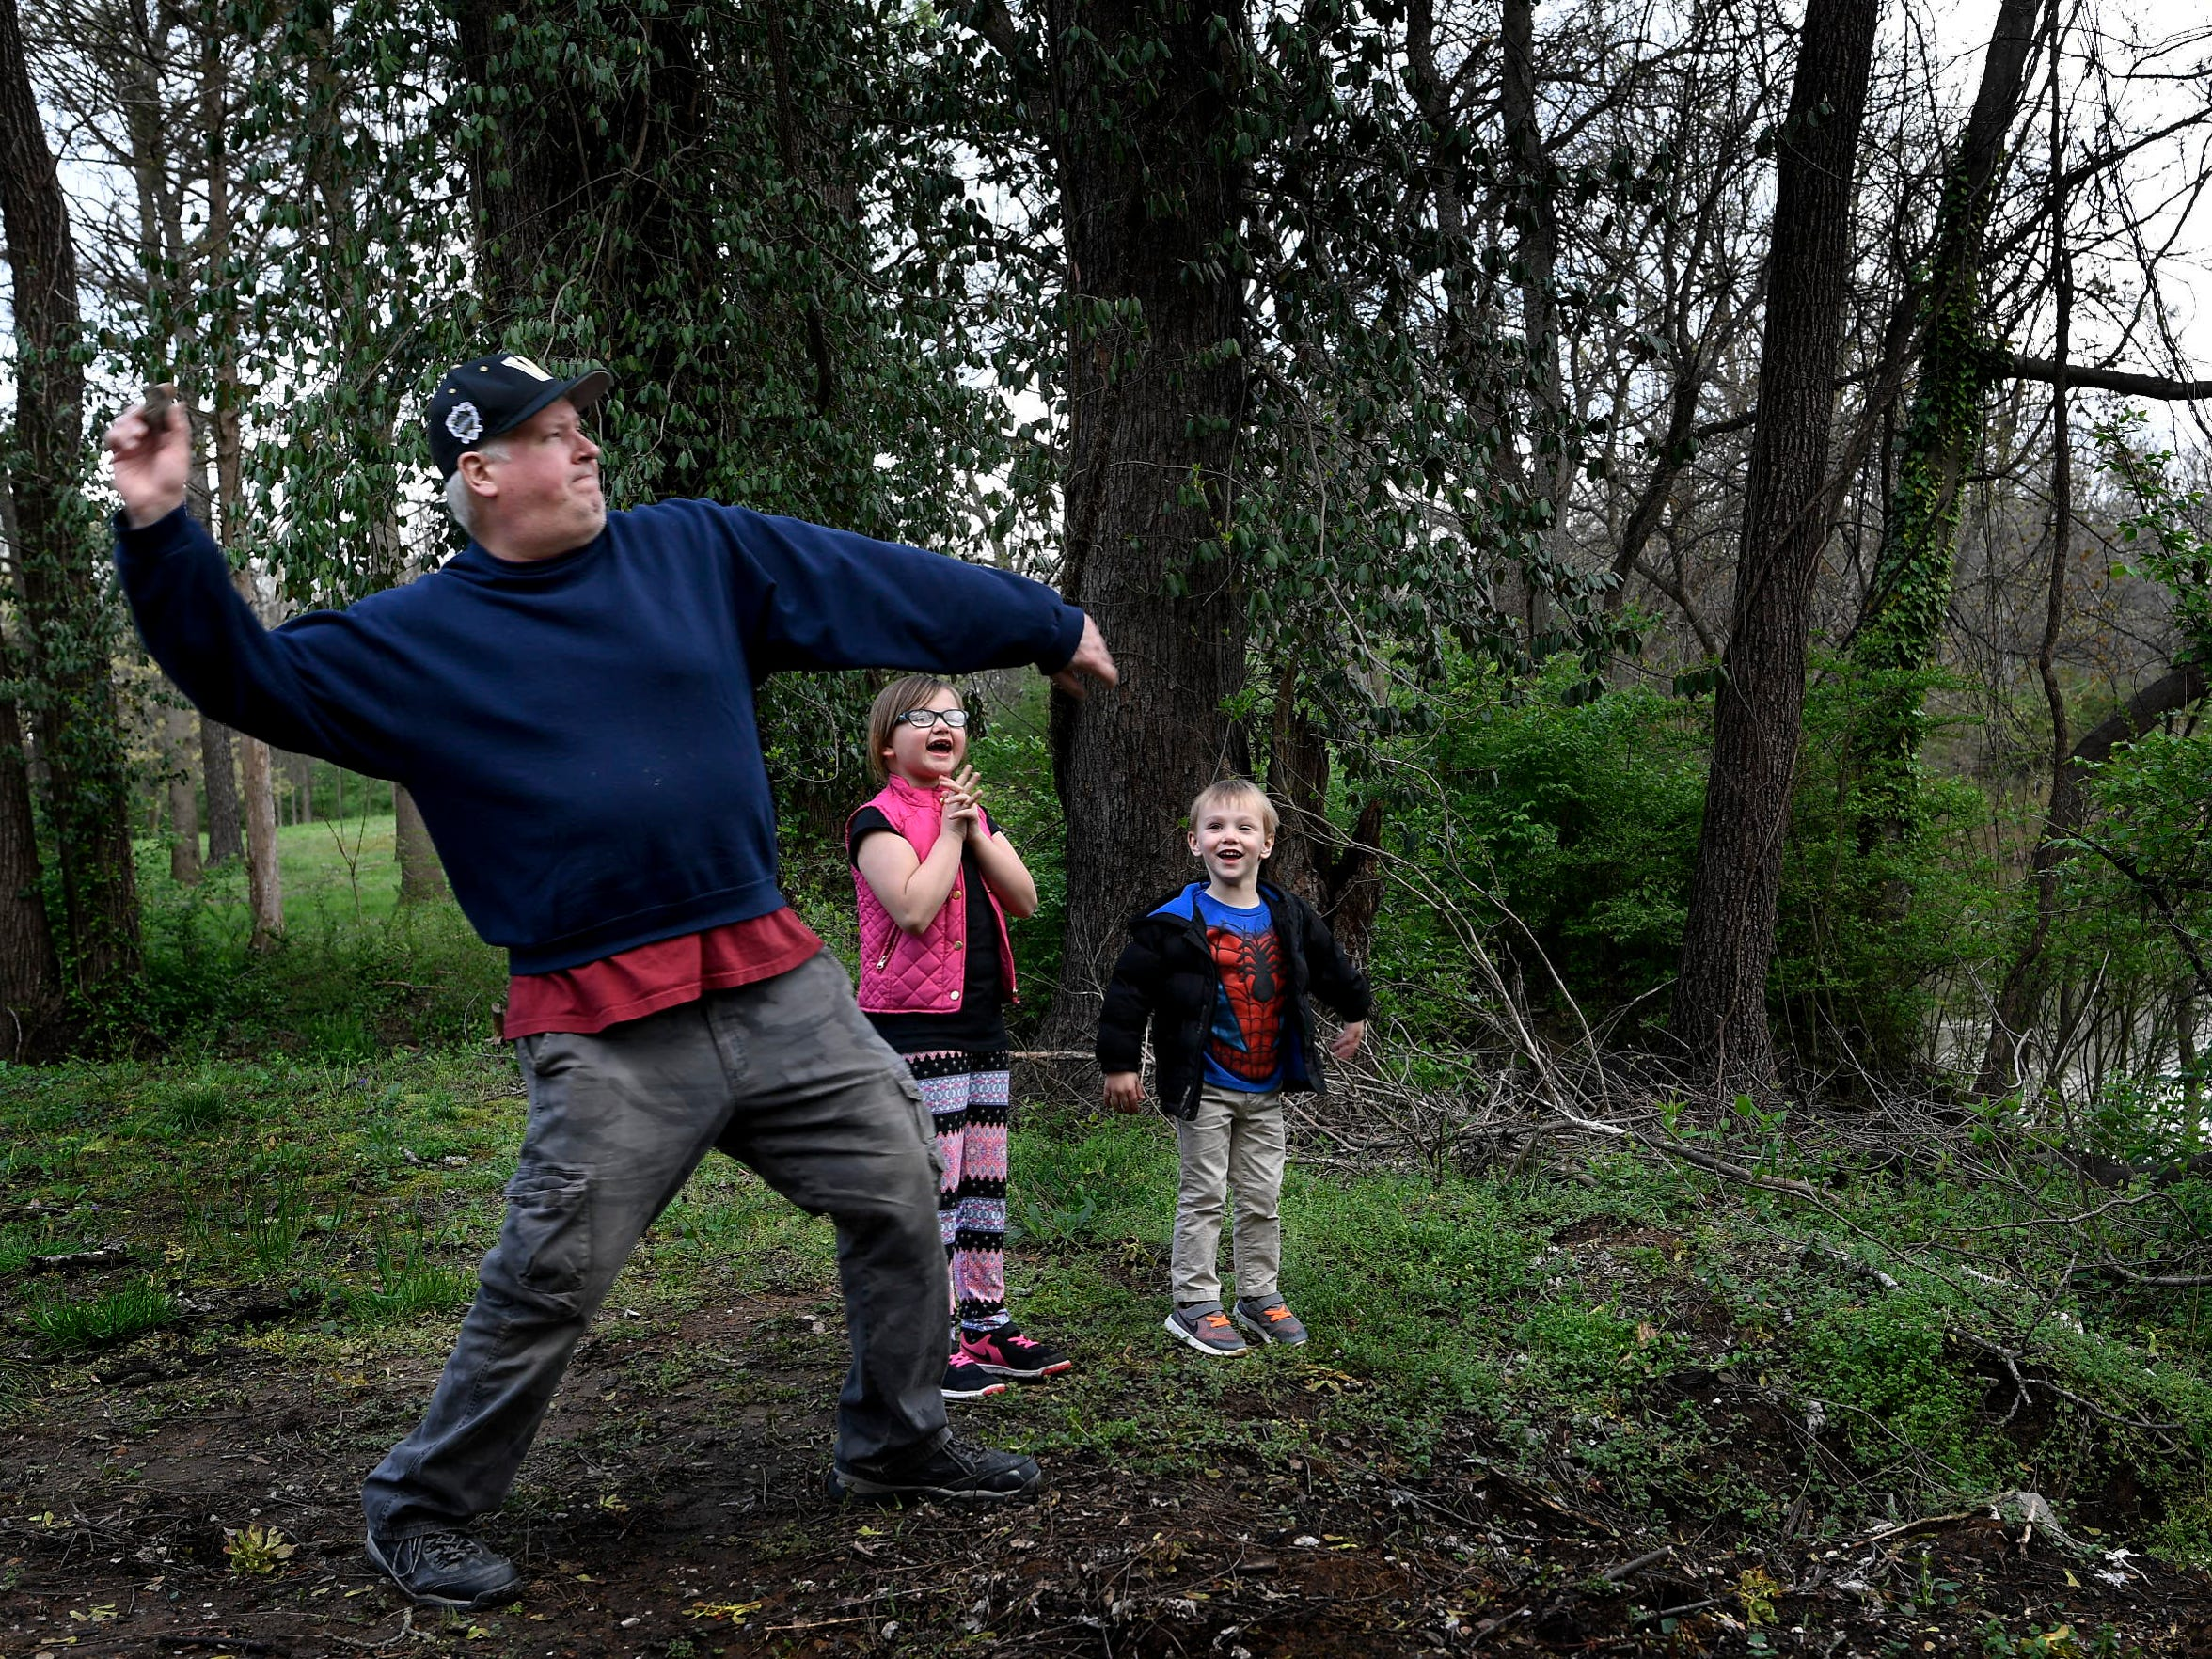 Mickey Baltz throws stones into the Cumberland River as grandchildren Braelyn and Tyler Hardin cheer as they visit Mickey's childhood home in Nashville on March 30, 2018.